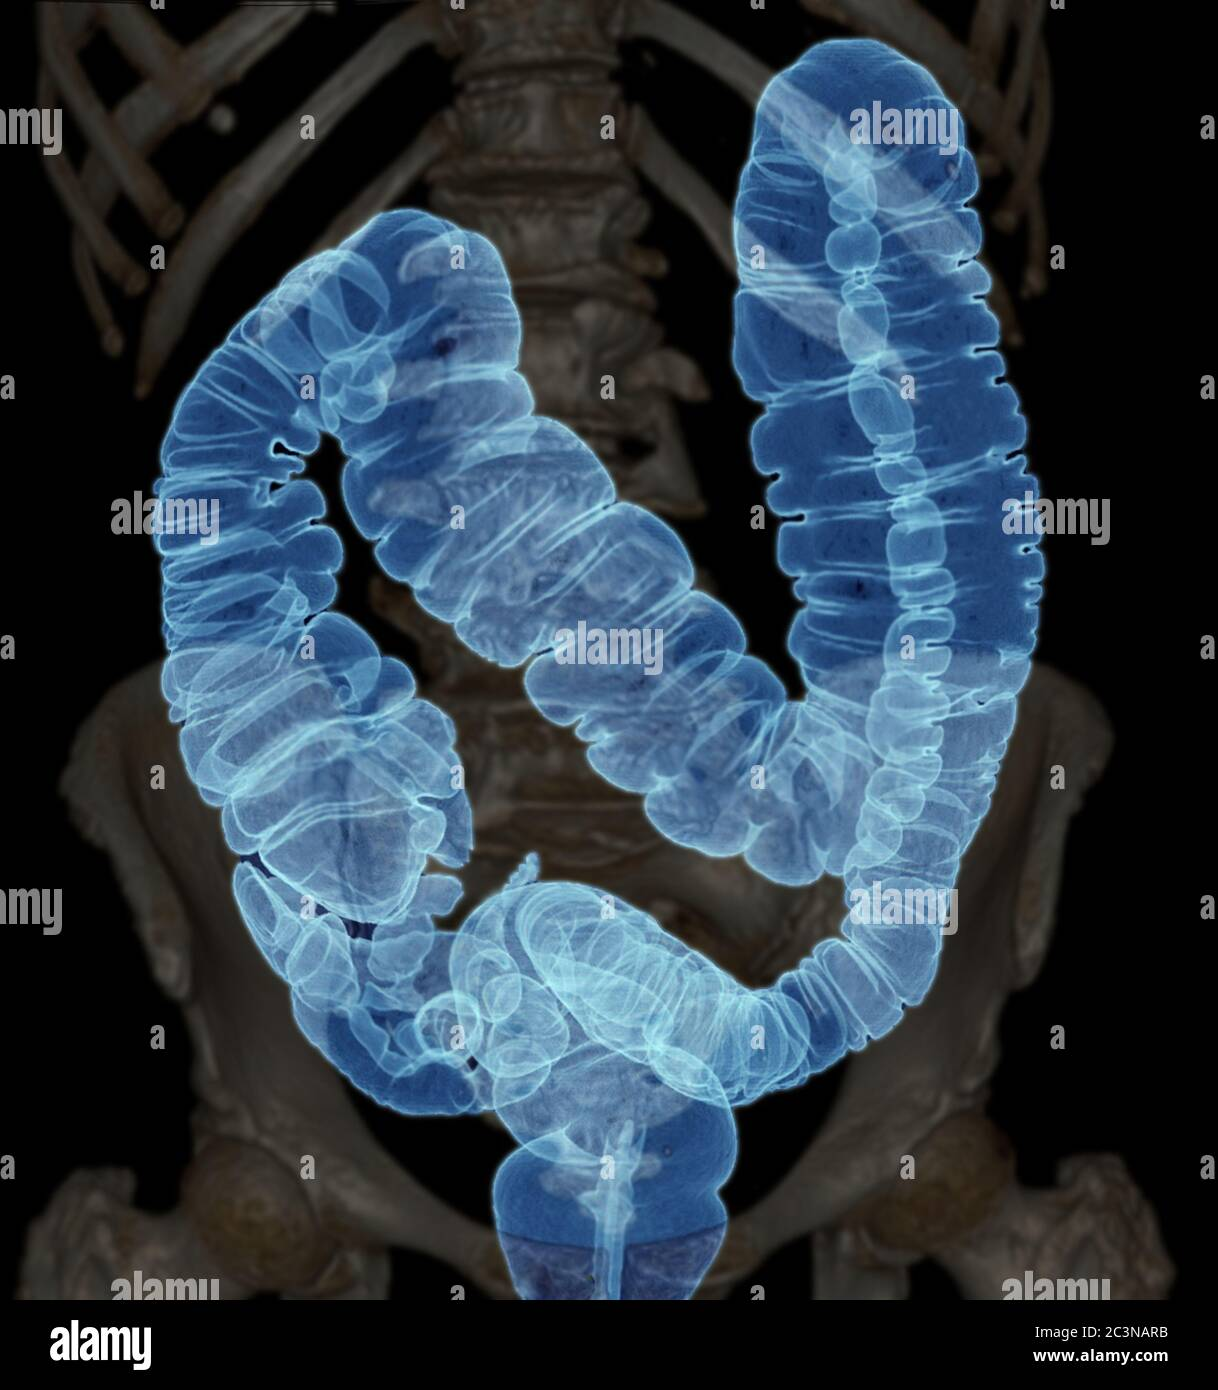 Ct Colonography Or Ct Scan Of Colon 3d Rendering Image Ap View Showing Colon For Screening Colorectal Cancer Check Up Screening Colon Cancer Stock Photo Alamy